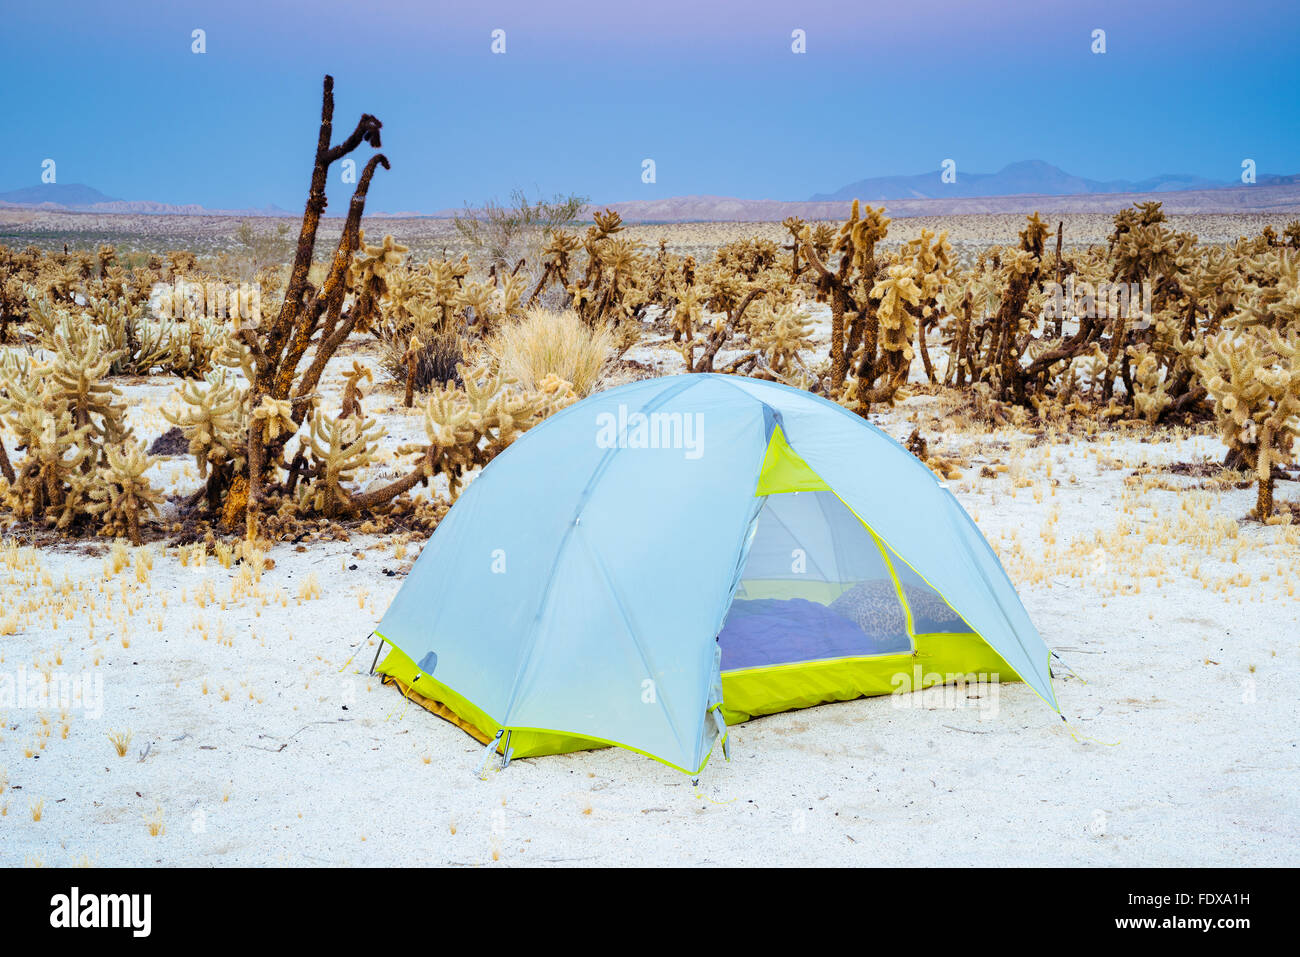 Tent camping at Mountain Springs Canyon Campground in Anza-Borrego Desert State Park, California - Stock Image